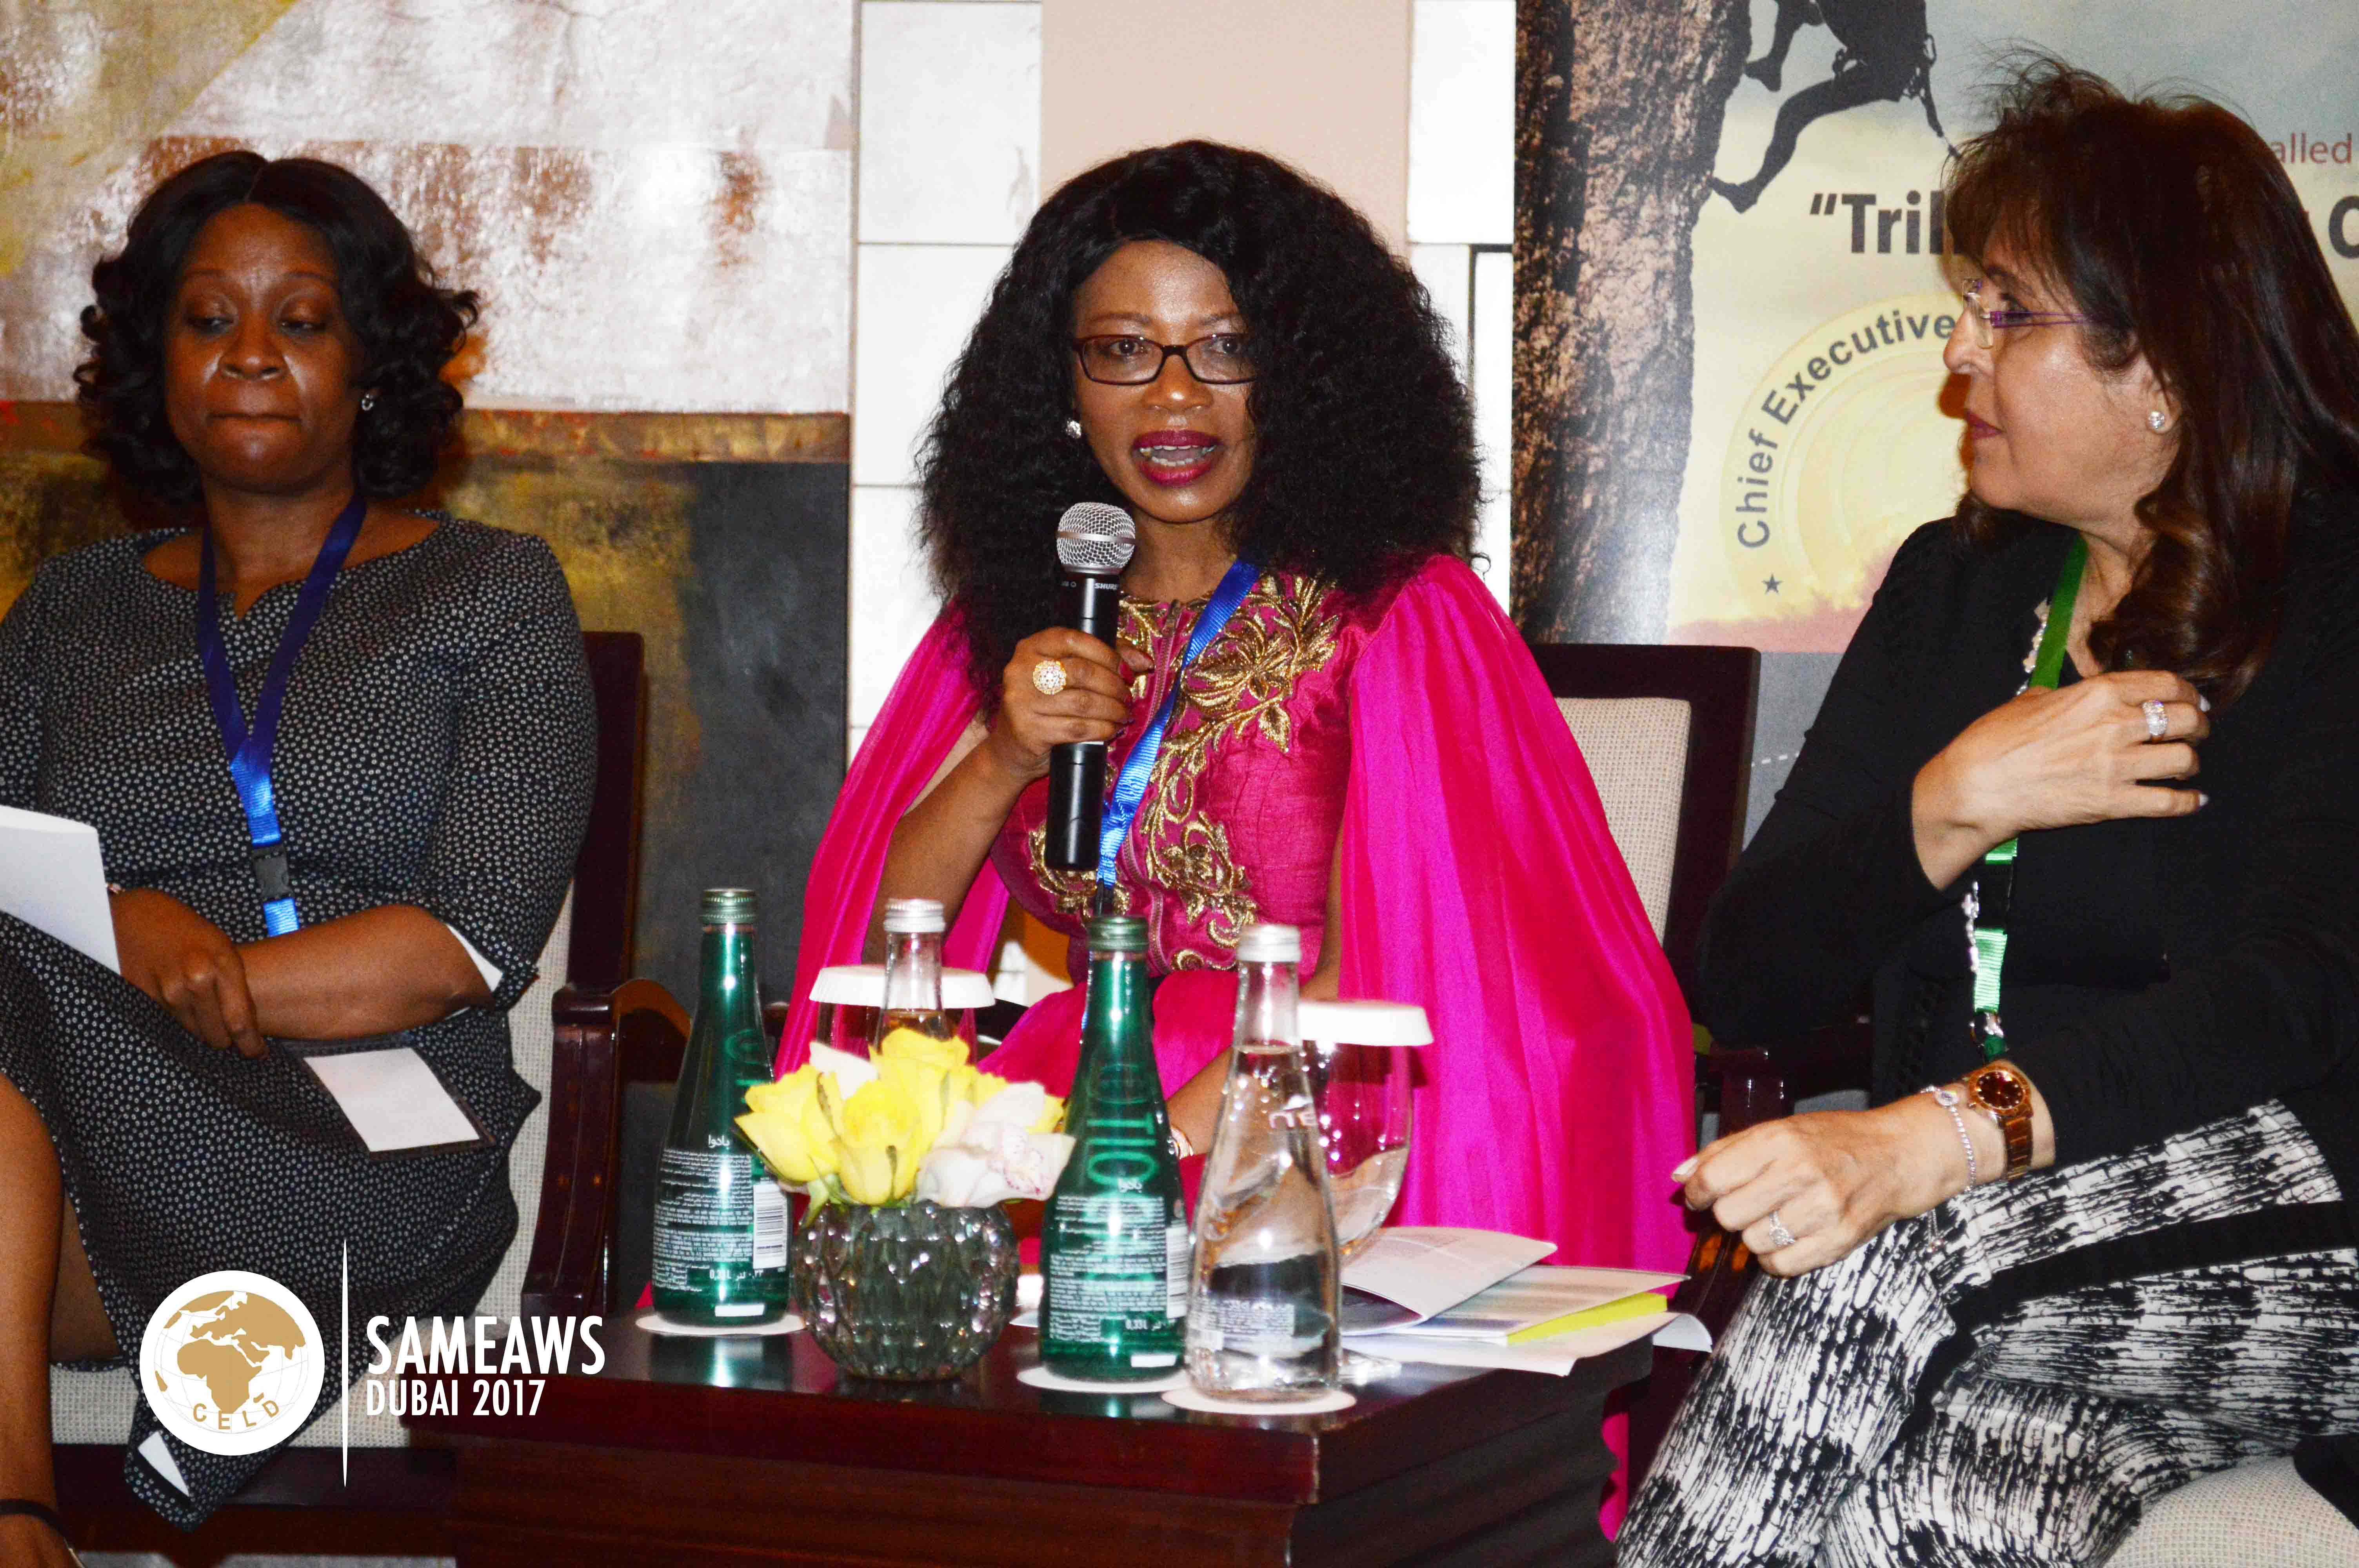 Esther Muchemi (Group CEO, Samchi Group, Kenya) Speaking as a panelist at SAMEAWS 2017